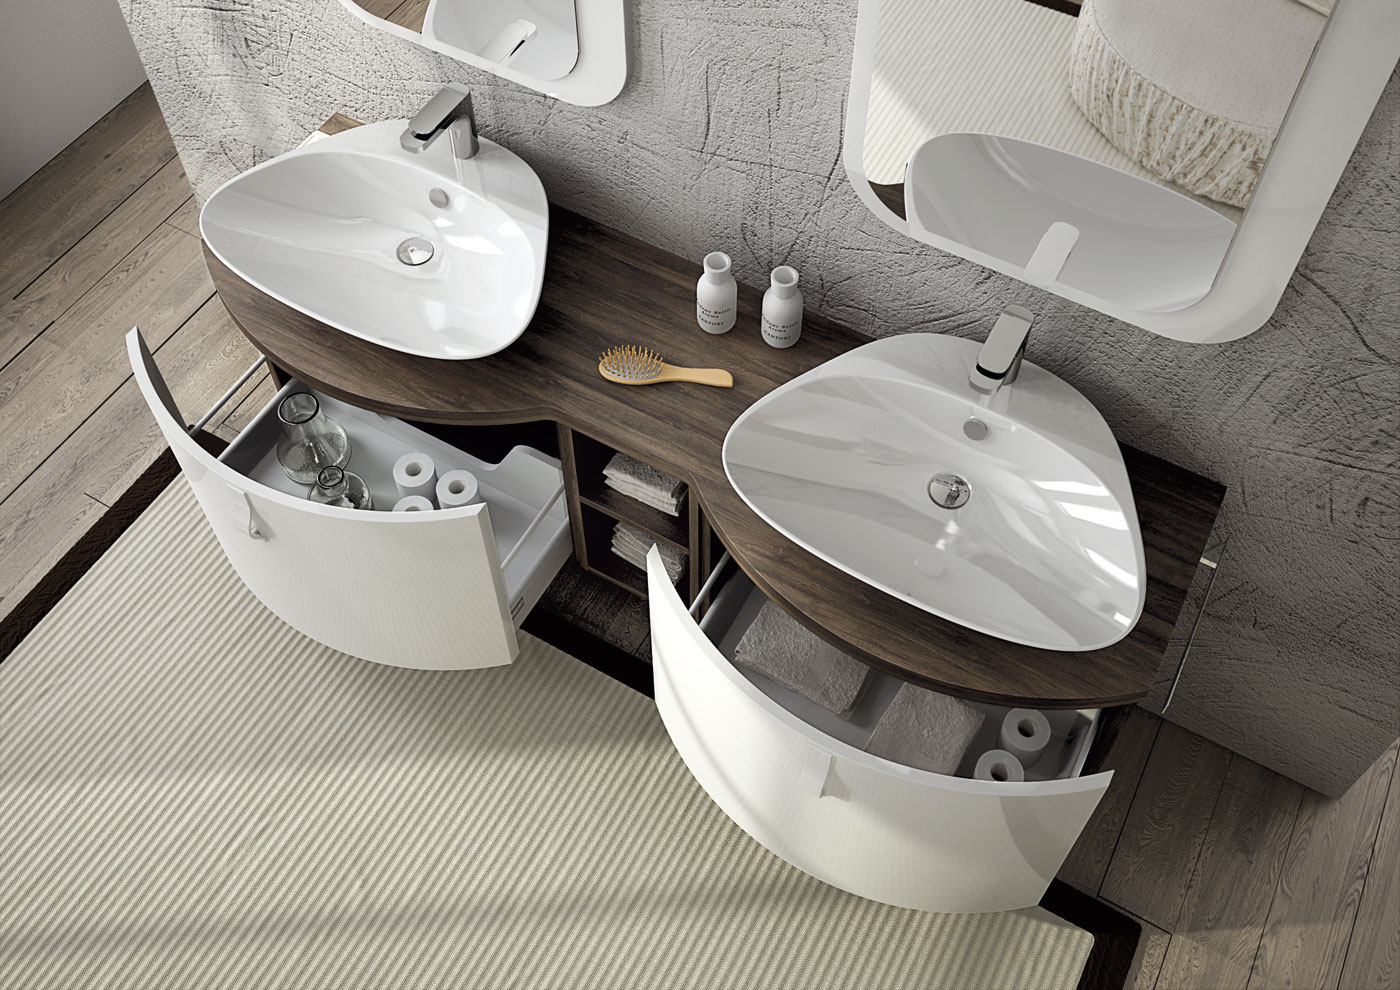 Mobile lavabo componibile doppio sospeso freedom 06 by for Mobile lavabo